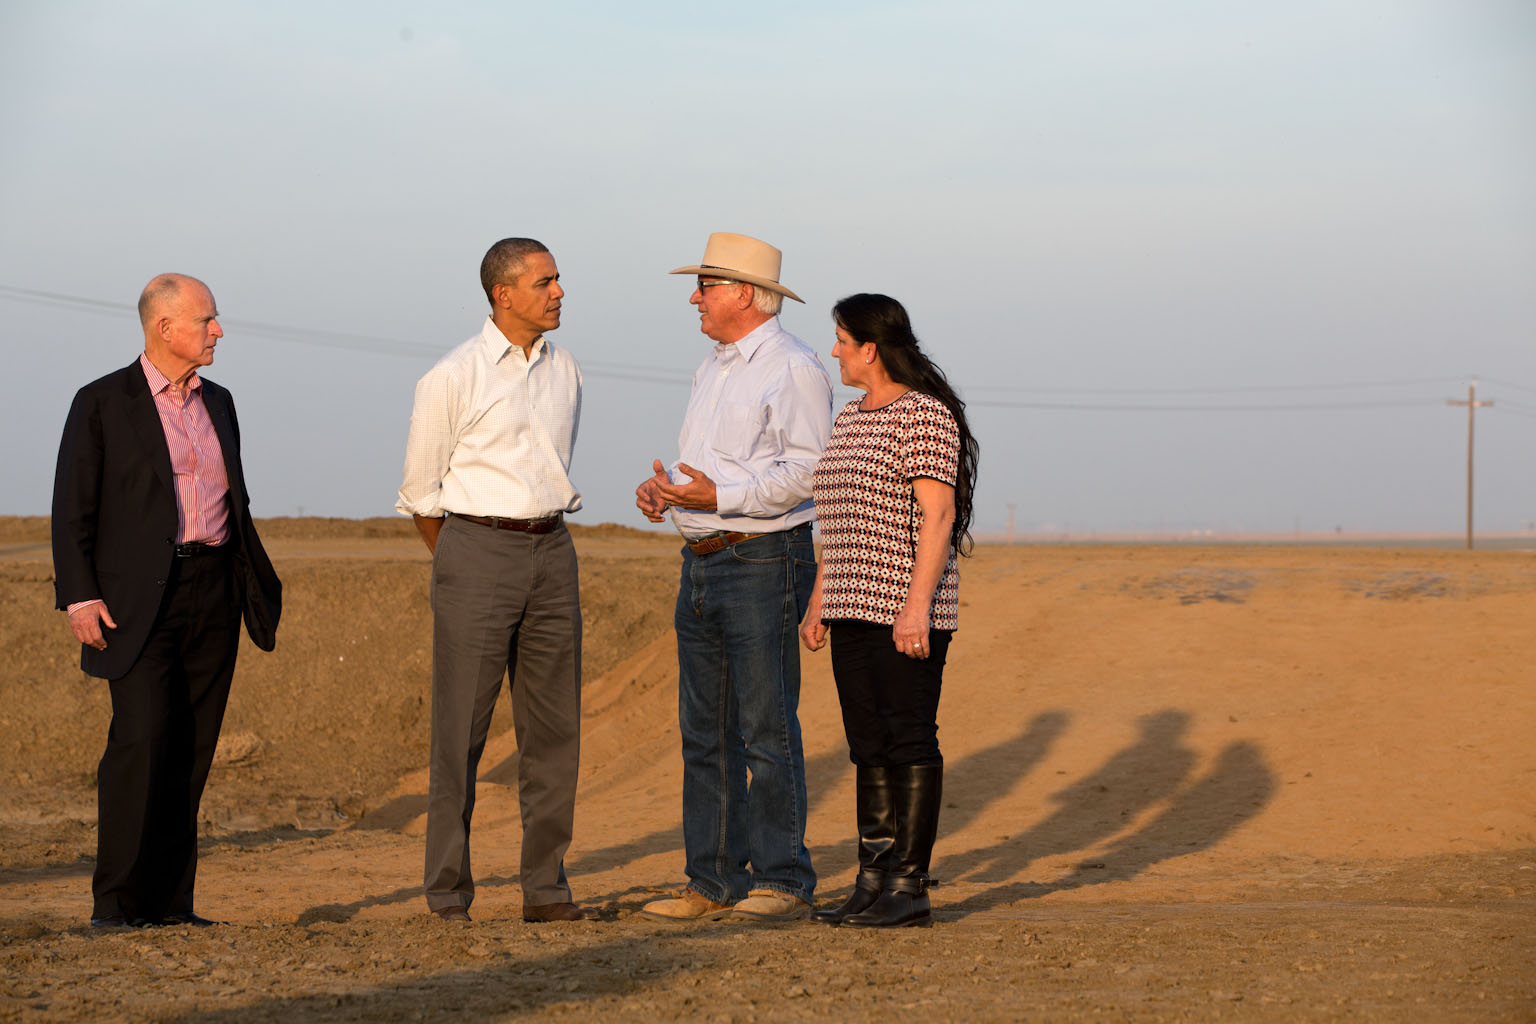 President Barack Obama tours a field with farmer Joe Del Bosque, his wife Maria, and California Gov. Jerry Brown in Los Banos, Calif., Feb. 14, 2014.